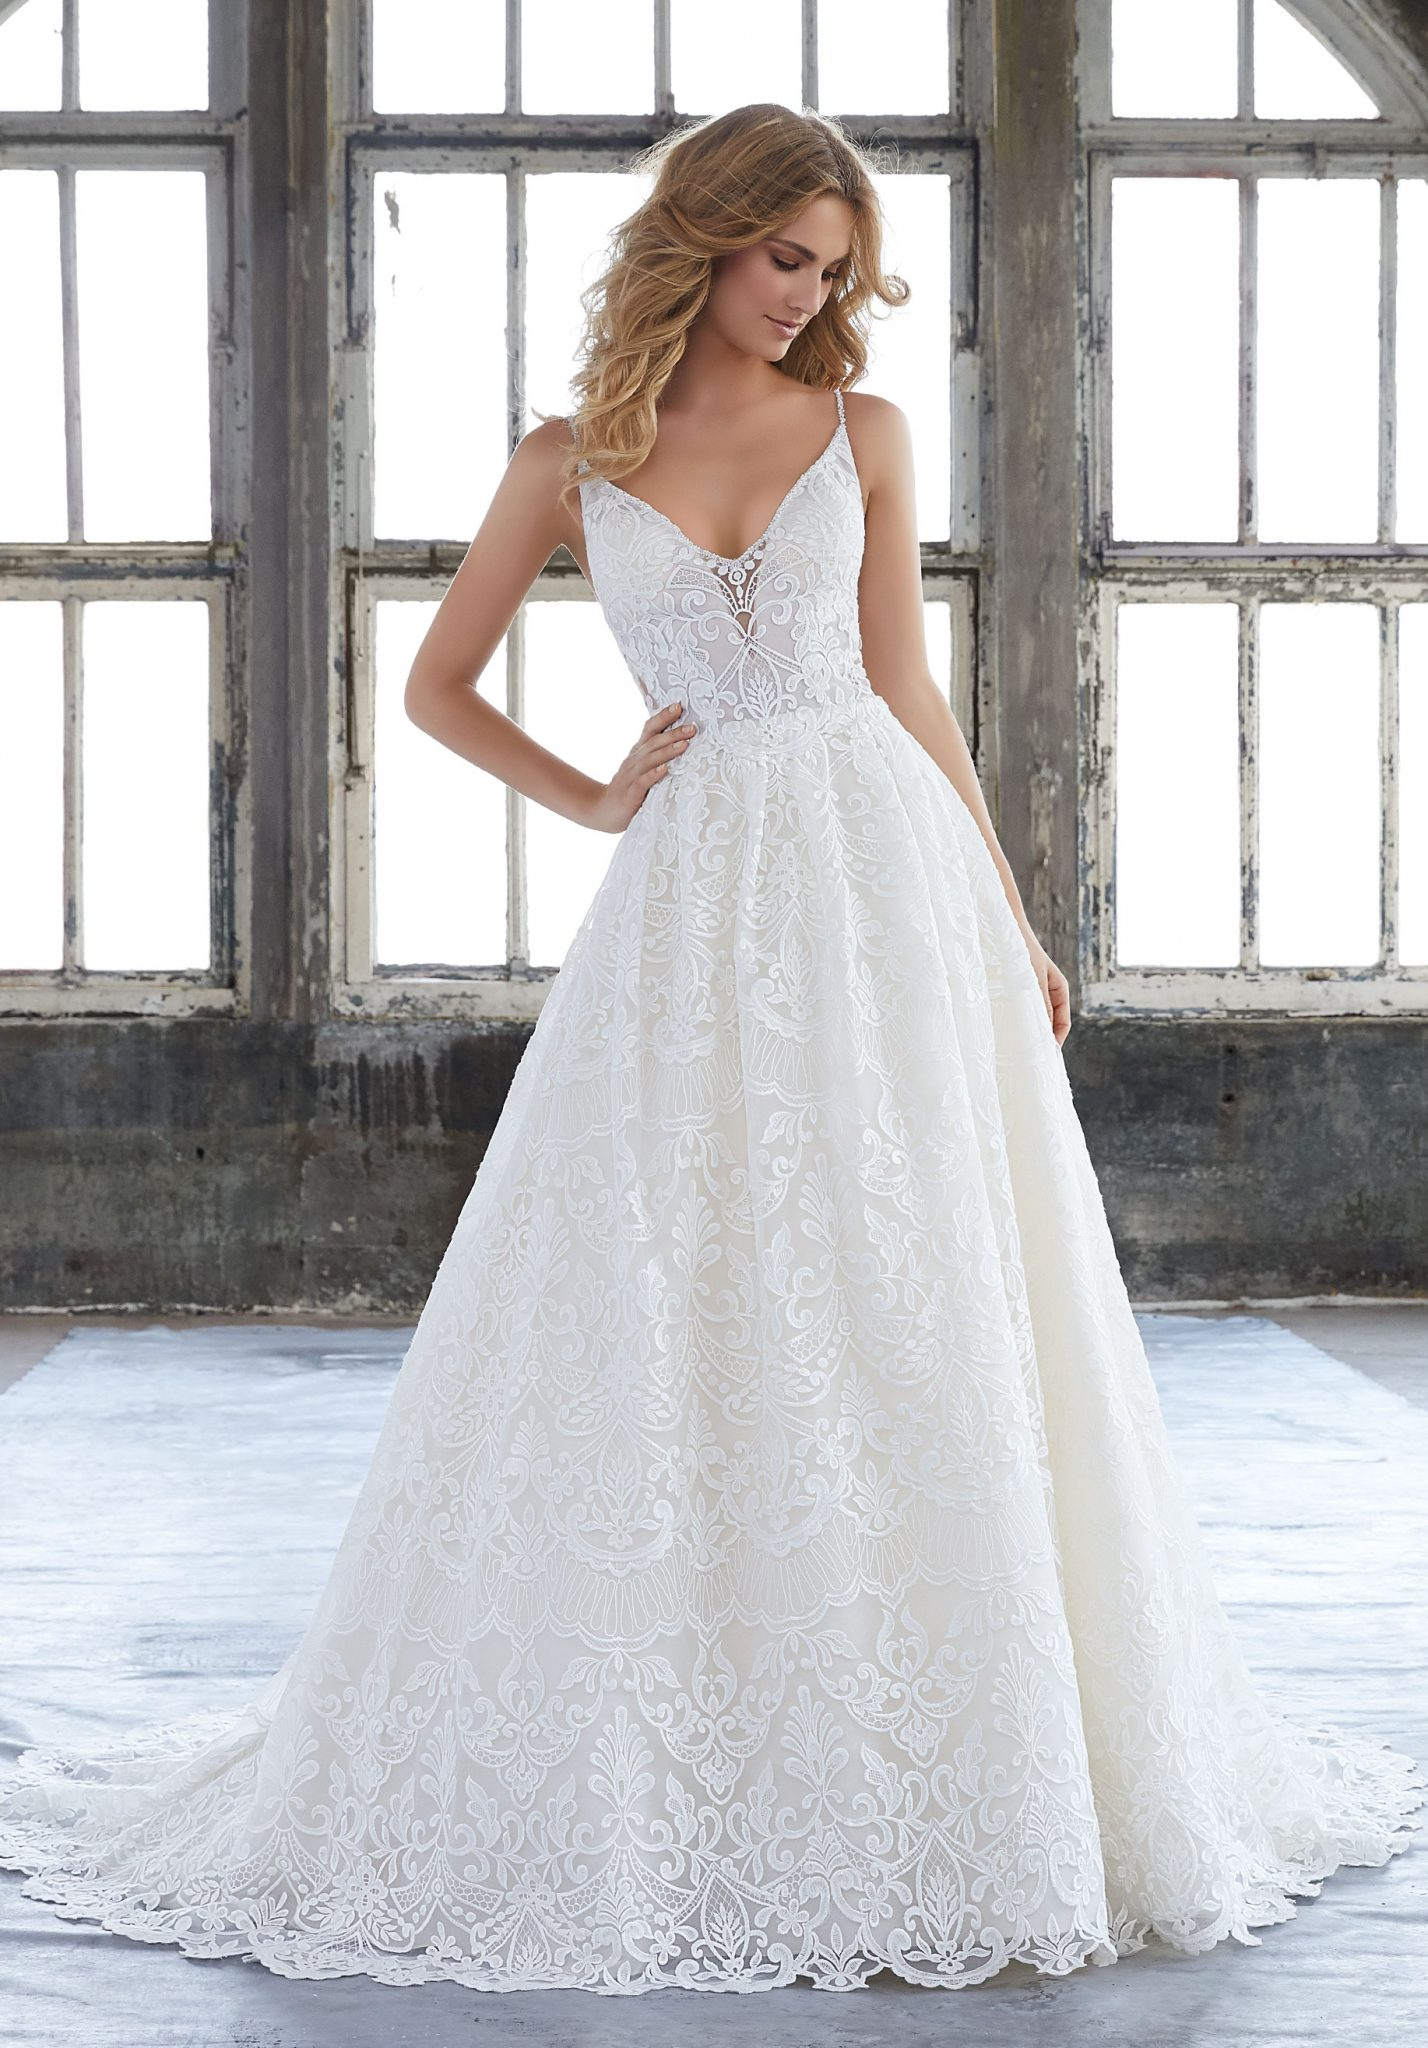 Kasey Perfect Wedding Dress